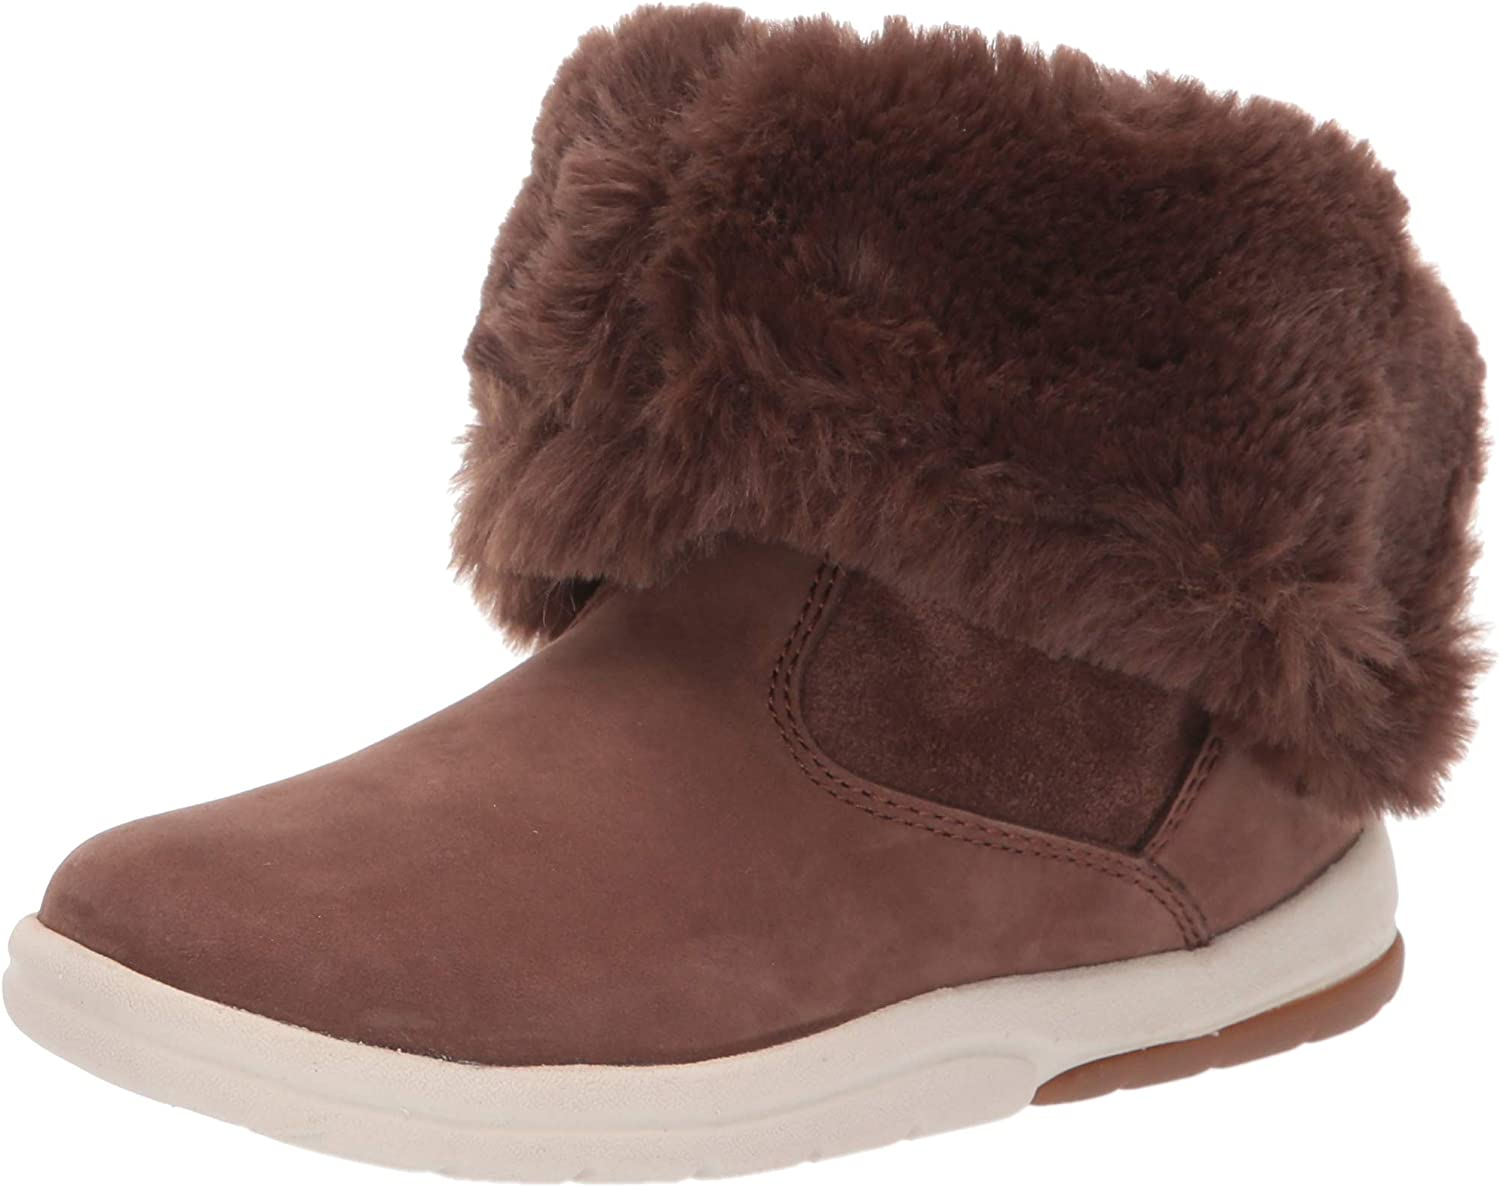 Timberland Unisex-Child Toddle Tracks Cheap mail order shopping Faux Seattle Mall Shearling Bootie Fash